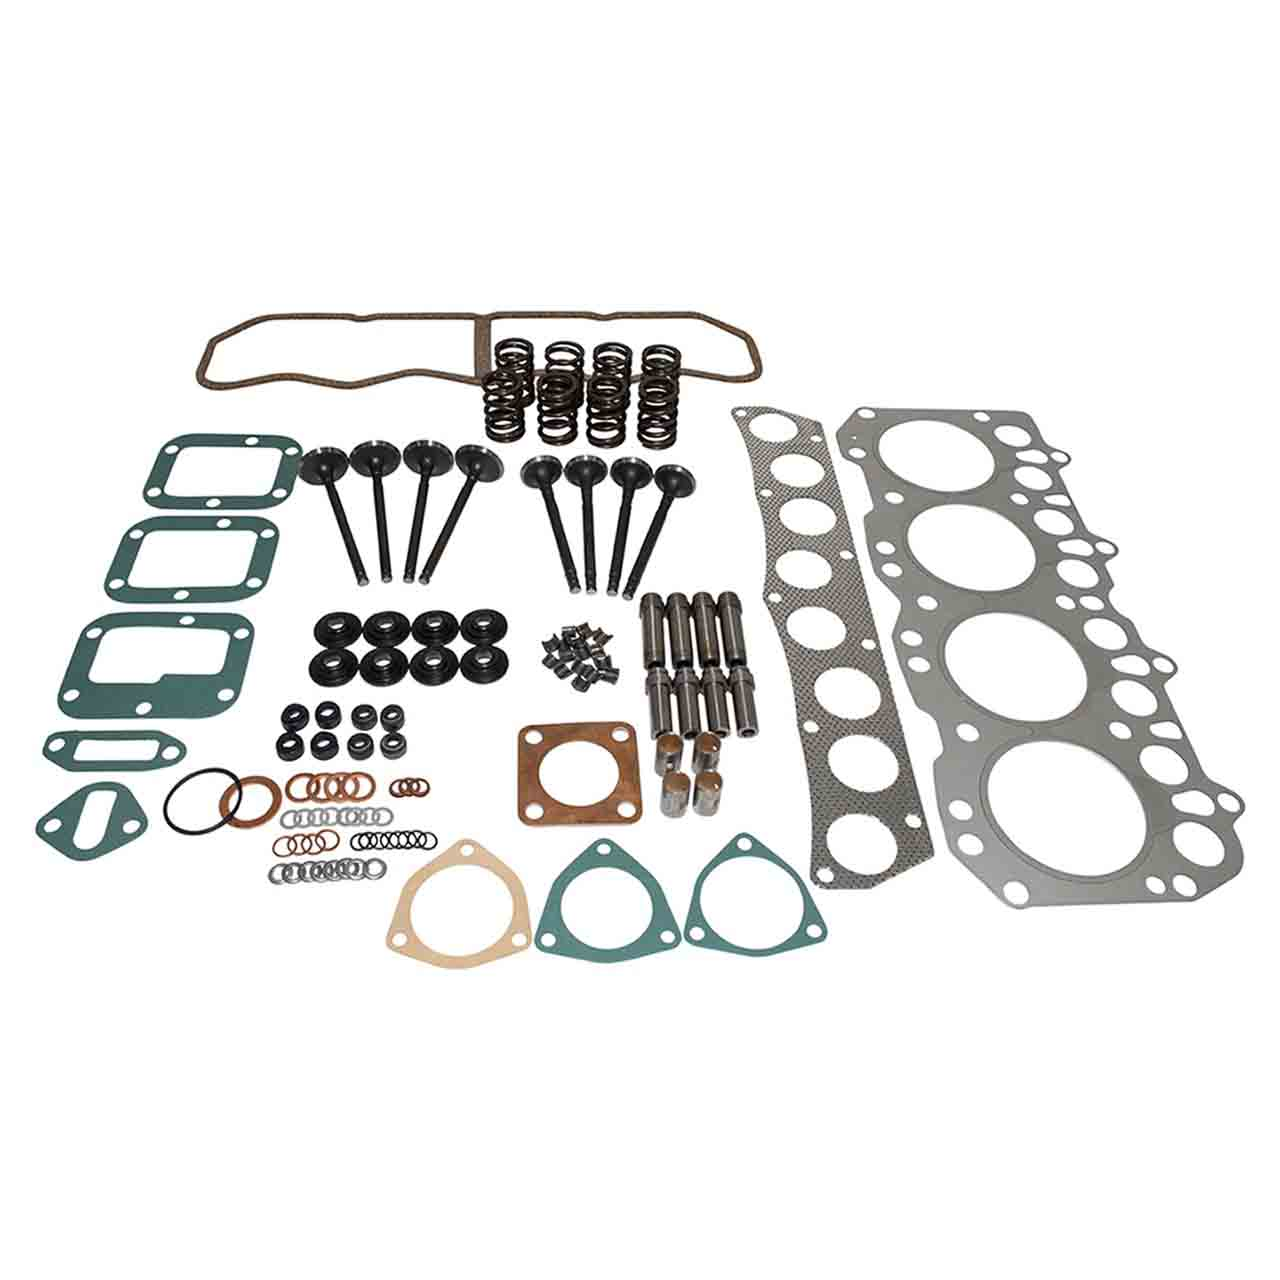 Serie 2-2A-3 Kit Revisione Testata Series 1 2 3 Land Rover GR2-08103